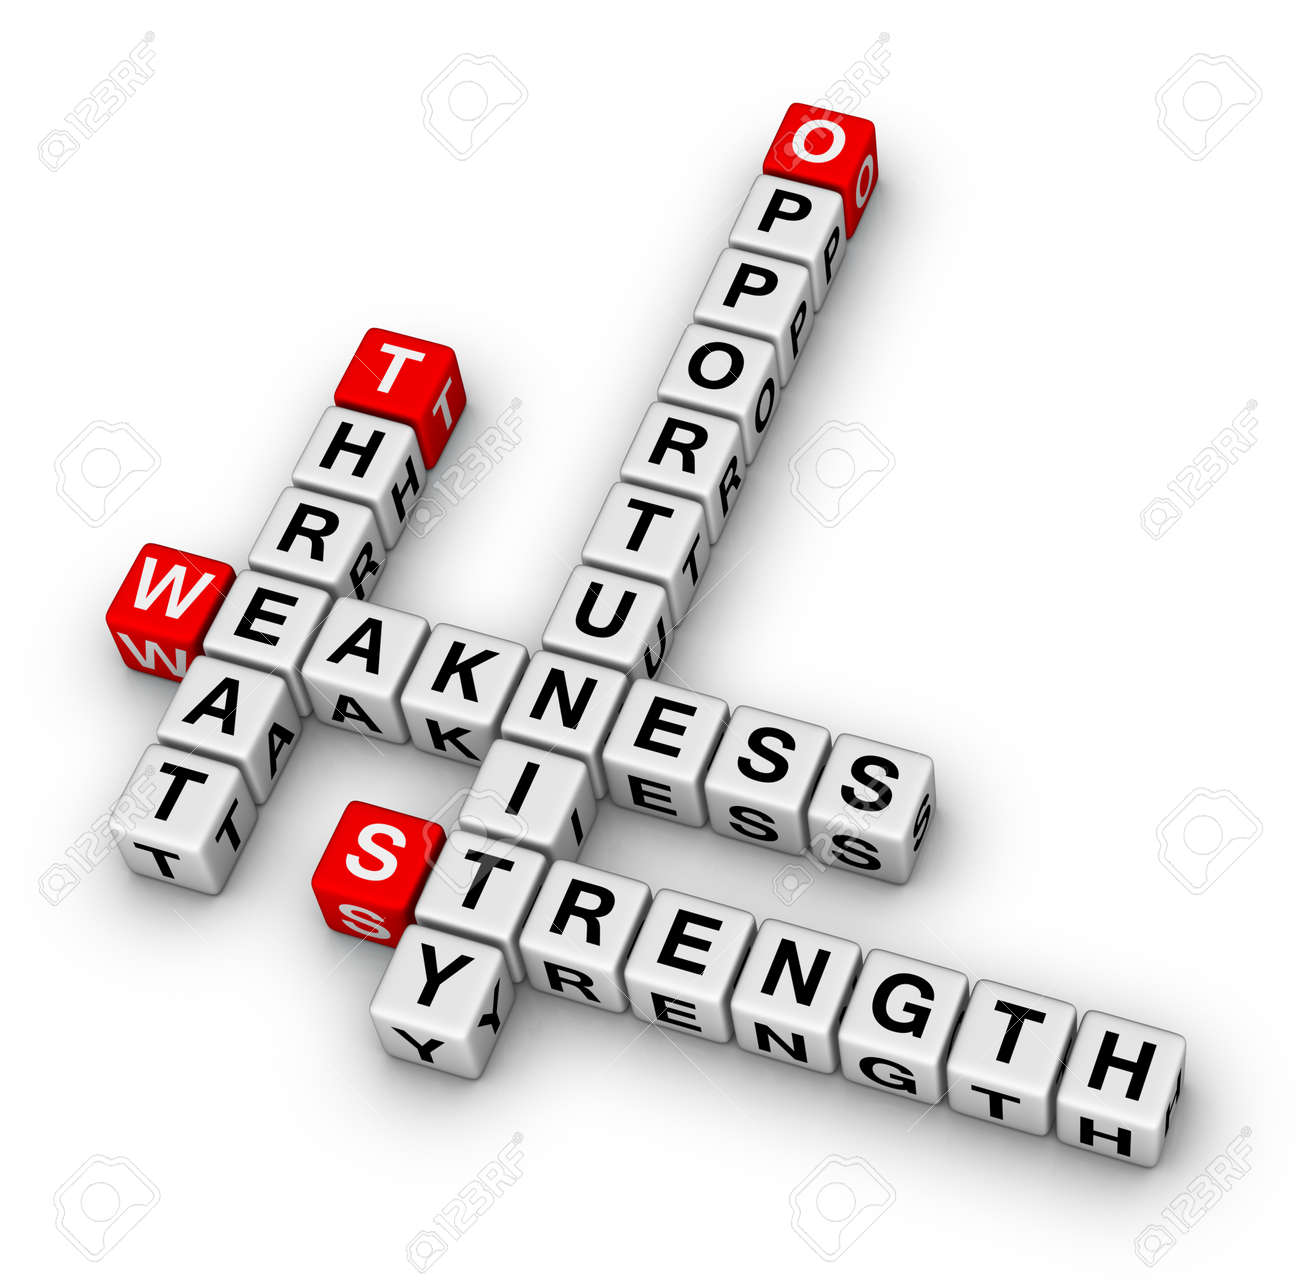 SWOT (strengths, weaknesses, opportunities, and threats) analysis, strategic planning method Stock Photo - 10631837